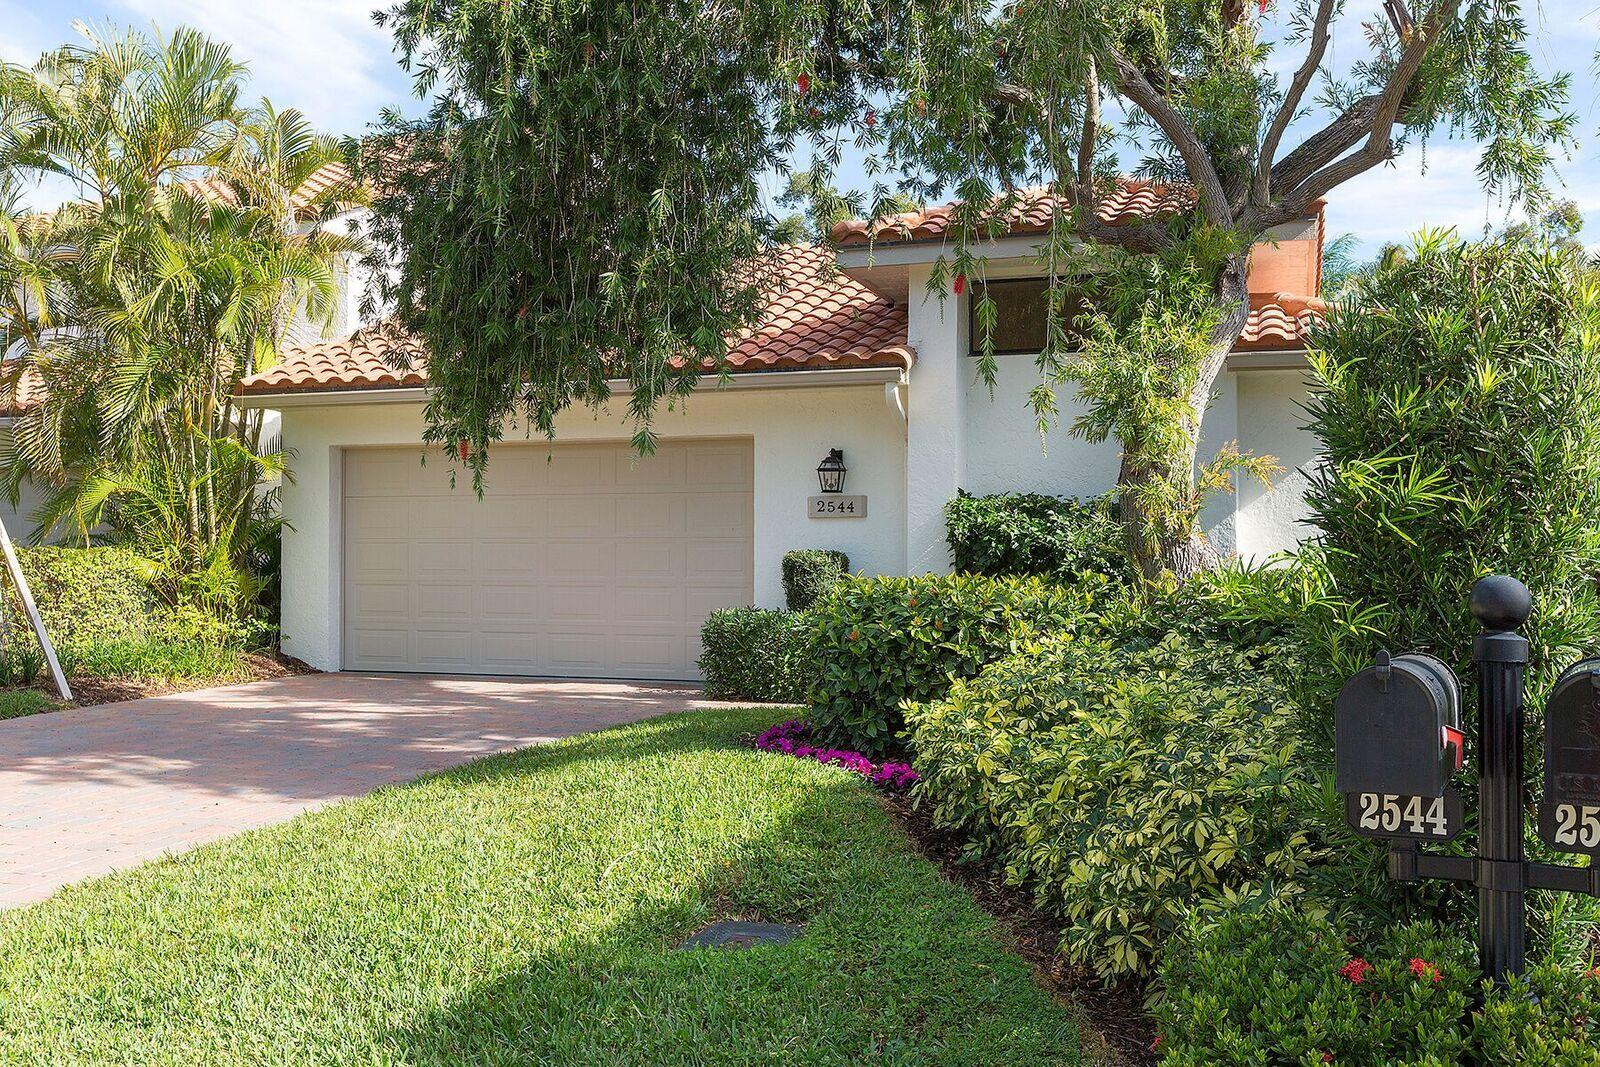 2544 Sheltingham Drive, Wellington, Florida 33414, 3 Bedrooms Bedrooms, ,3 BathroomsBathrooms,Villa,For Sale,Palm Beach Polo,Sheltingham,RX-10401872